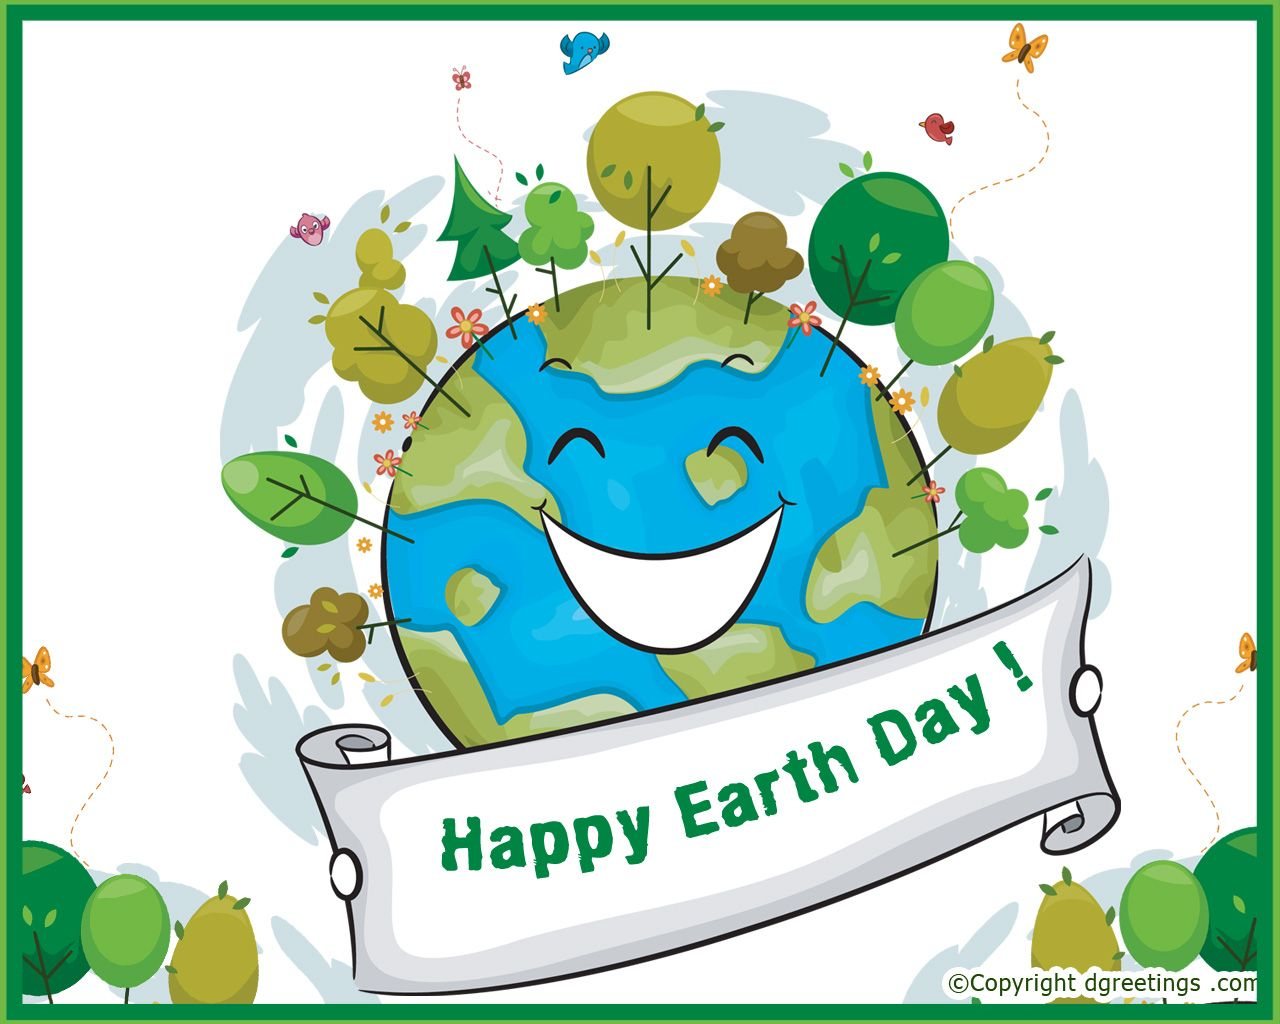 Wish You All Happy Earth Day Painting Graphic